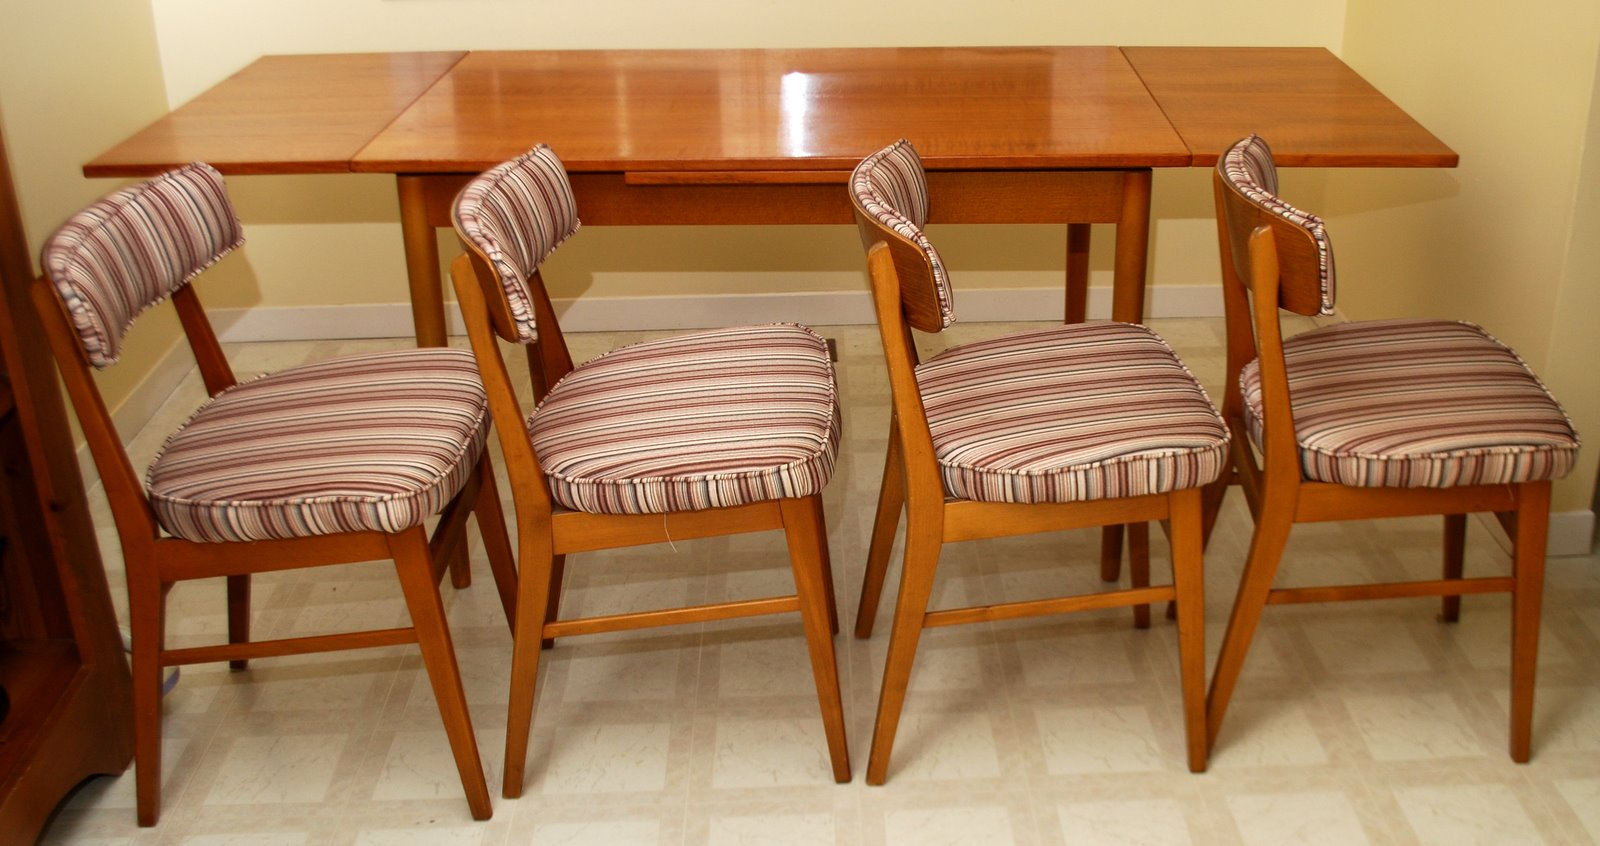 20th Decor Mid Century Modern Danish Teak Dining Table And Chairs